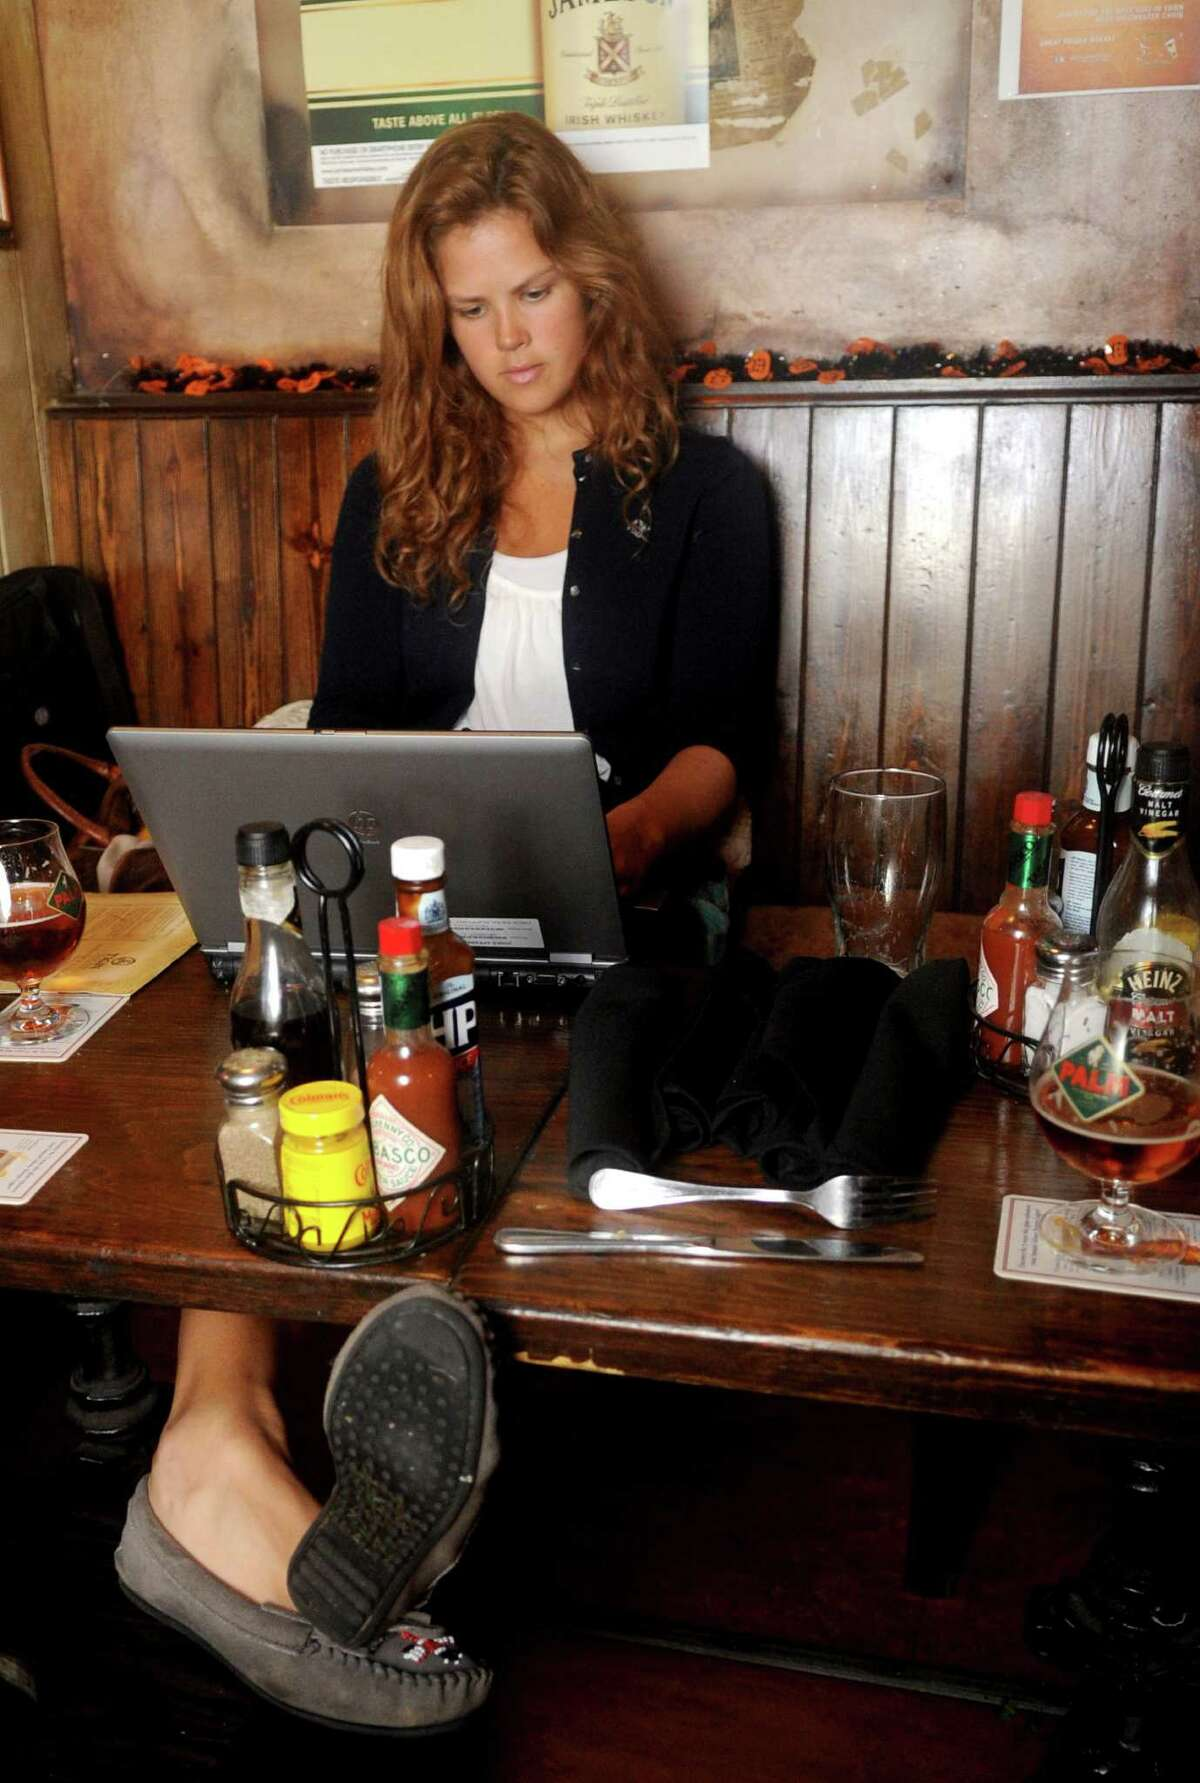 Gillian Stewart, a New York City resident who came to stay with family in Stamford, Conn., before Hurricane Sandy, works remotely from Tigin because she is without electricity on Tuesday, October 30, 2012.